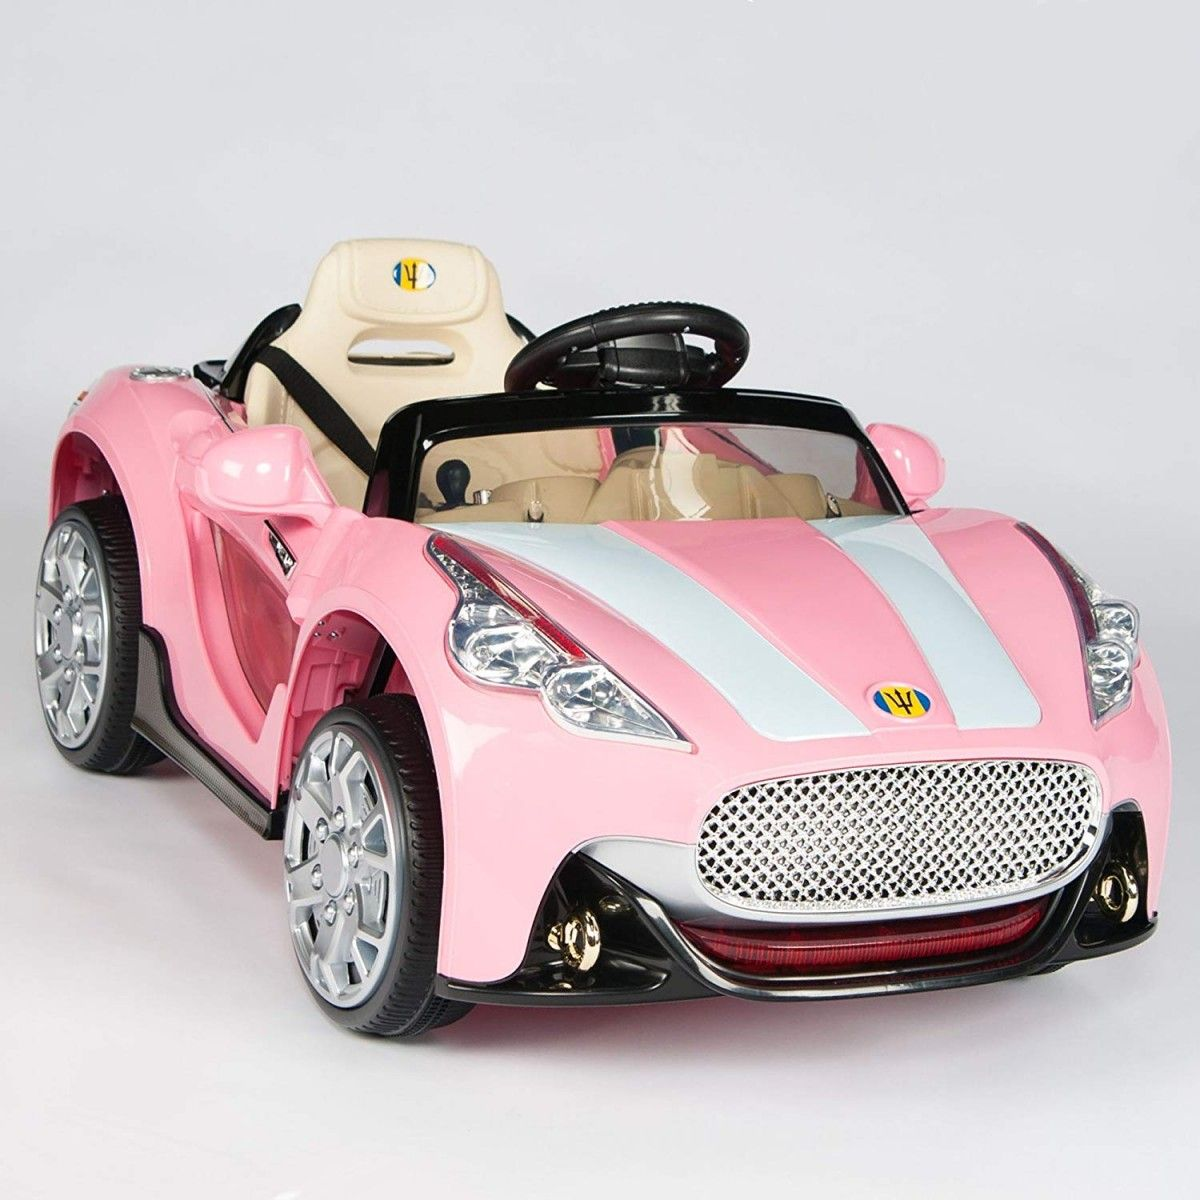 Fresh Big Cars for Kids to Drive | Toy cars for kids, Kids motorized cars,  Power wheels